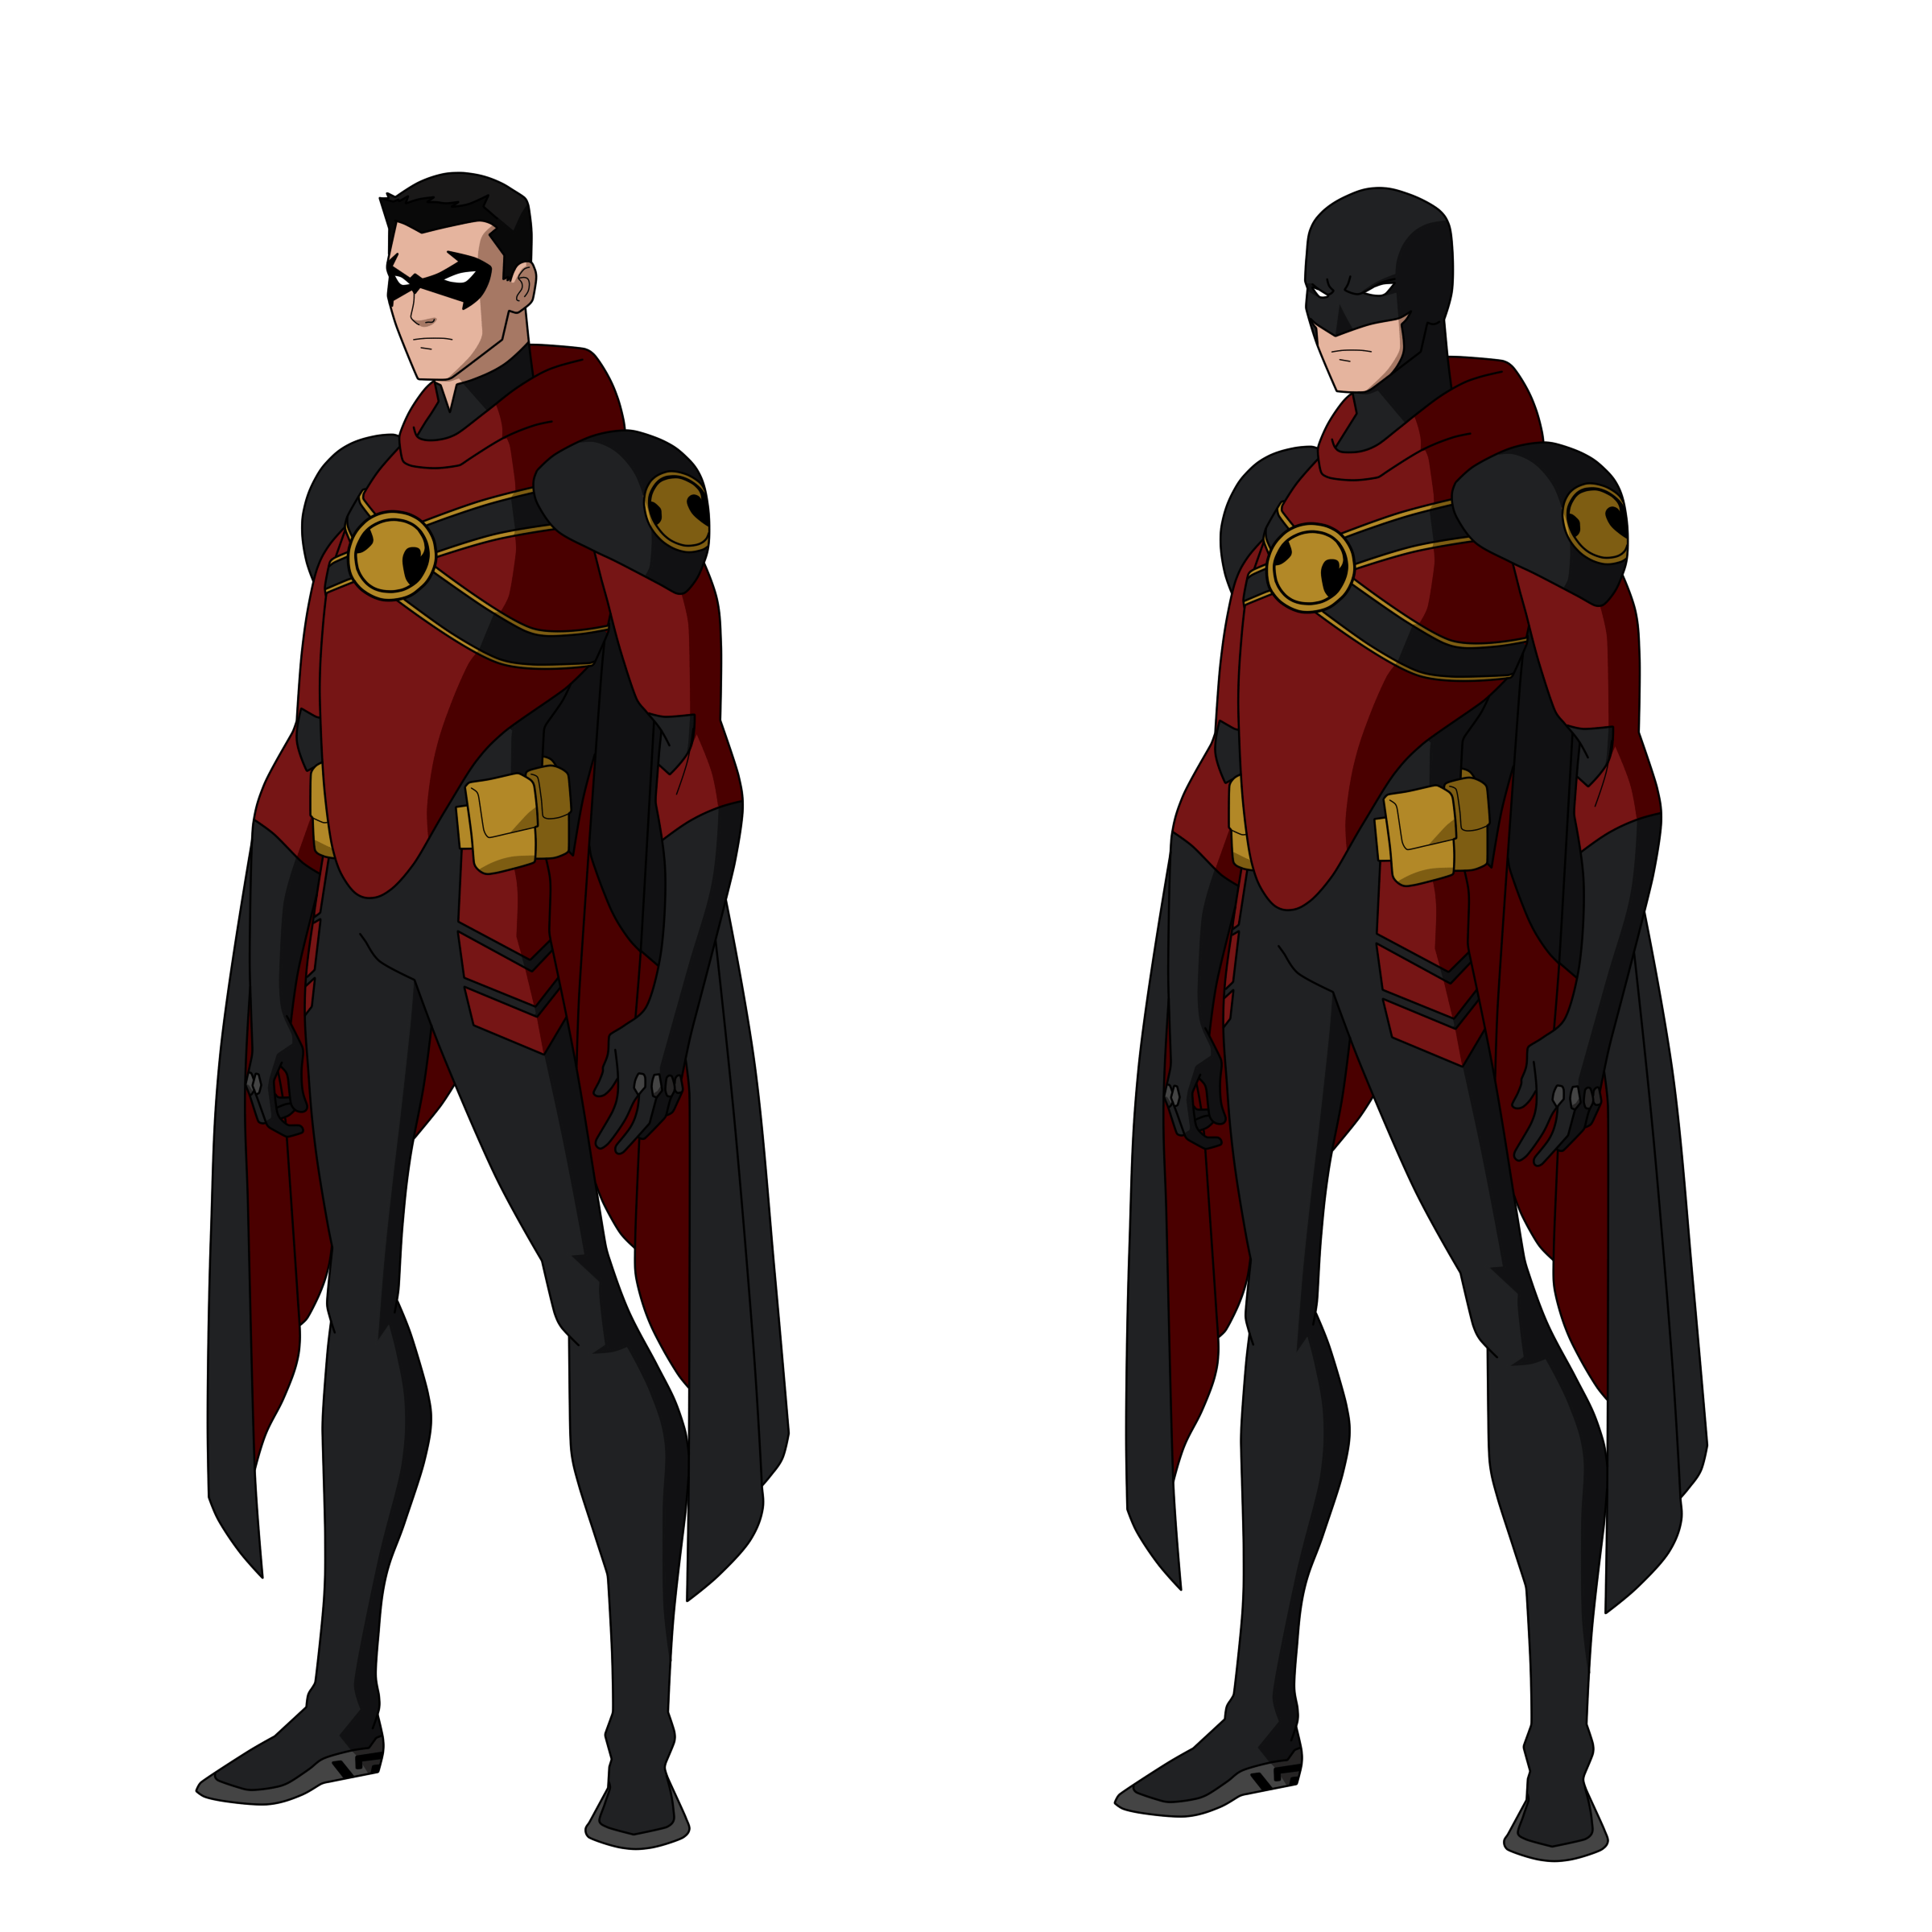 Robin Design Red Robin Titans Designs By Bobkitty23 On Deviantart